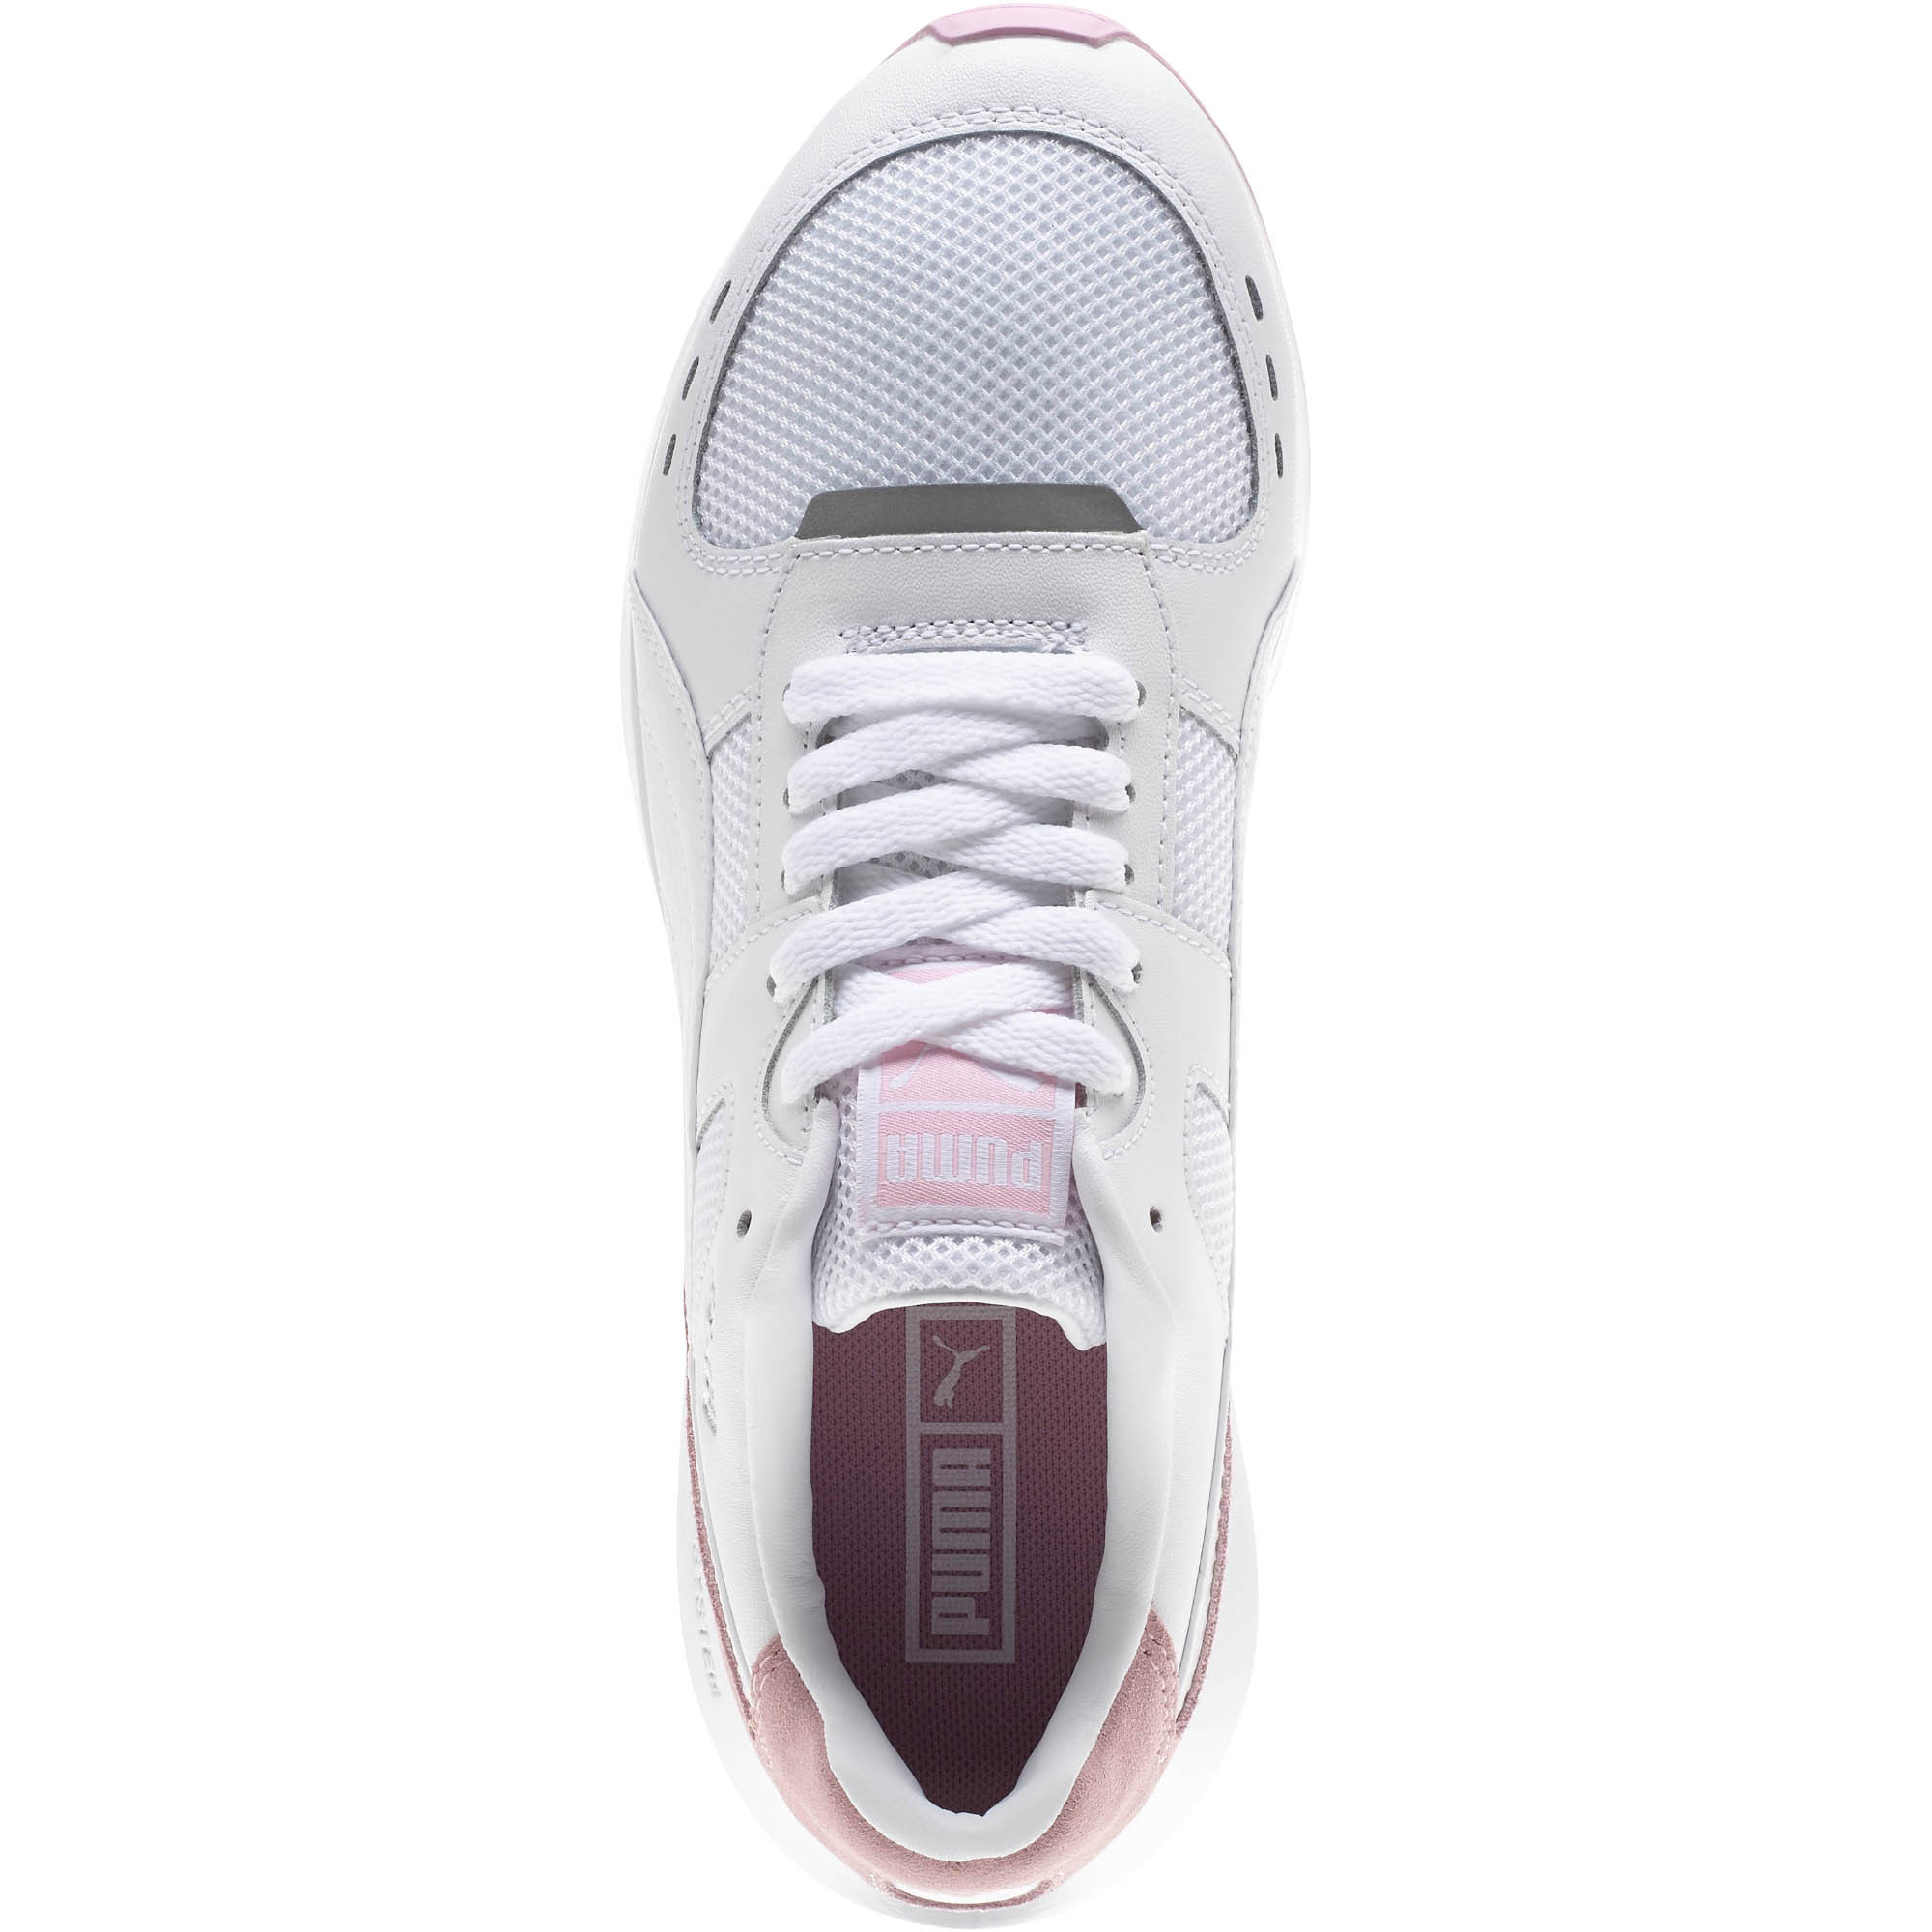 PUMA-Women-039-s-RS-150-Contrast-Sneakers thumbnail 6